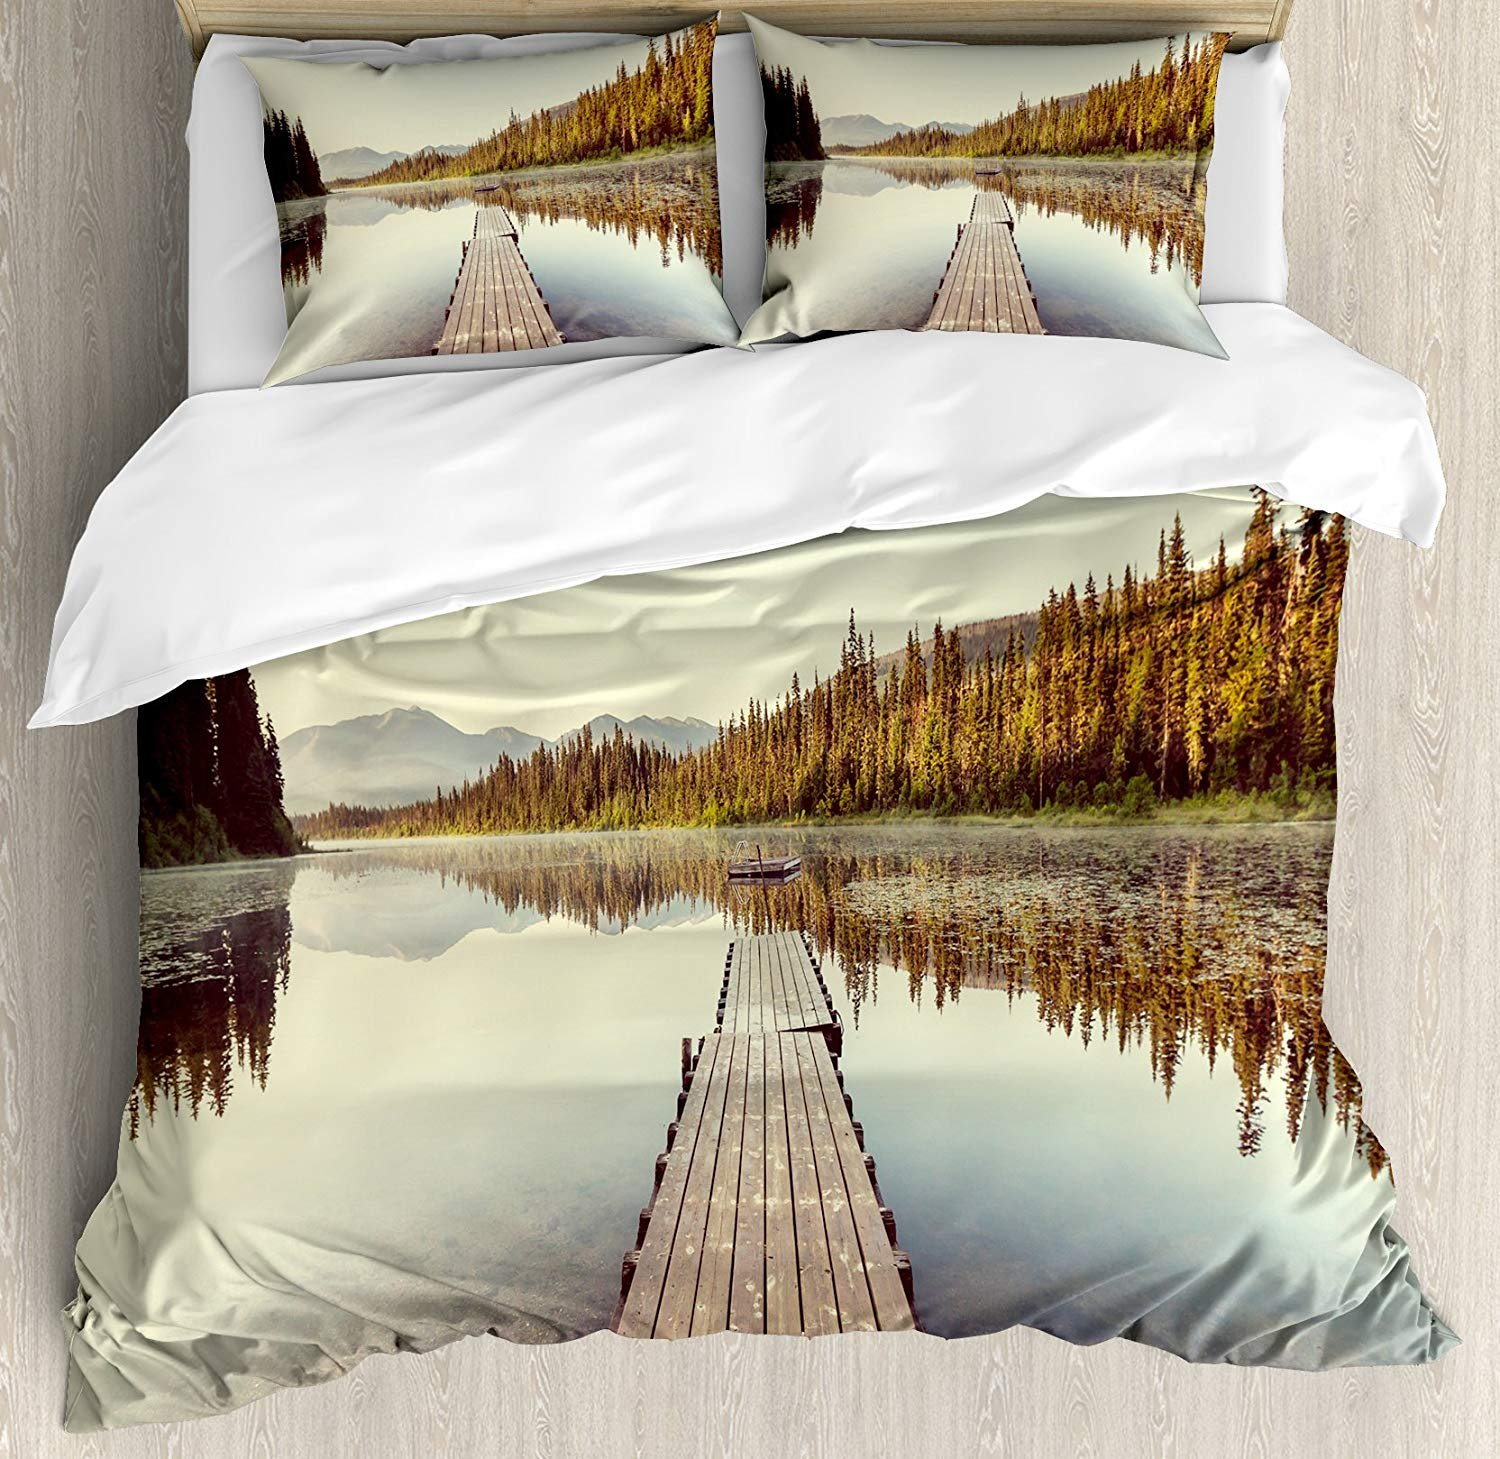 Anzona Twin Size Fall 3 PCS Duvet Cover Set, Wooden Pier on The Lake Serene Morning in The Woods Fishing Misty Recreational Image, Bedding Set Bedspread for Children/Teens/Adults/Kids, Multicolor by Anzona (Image #1)